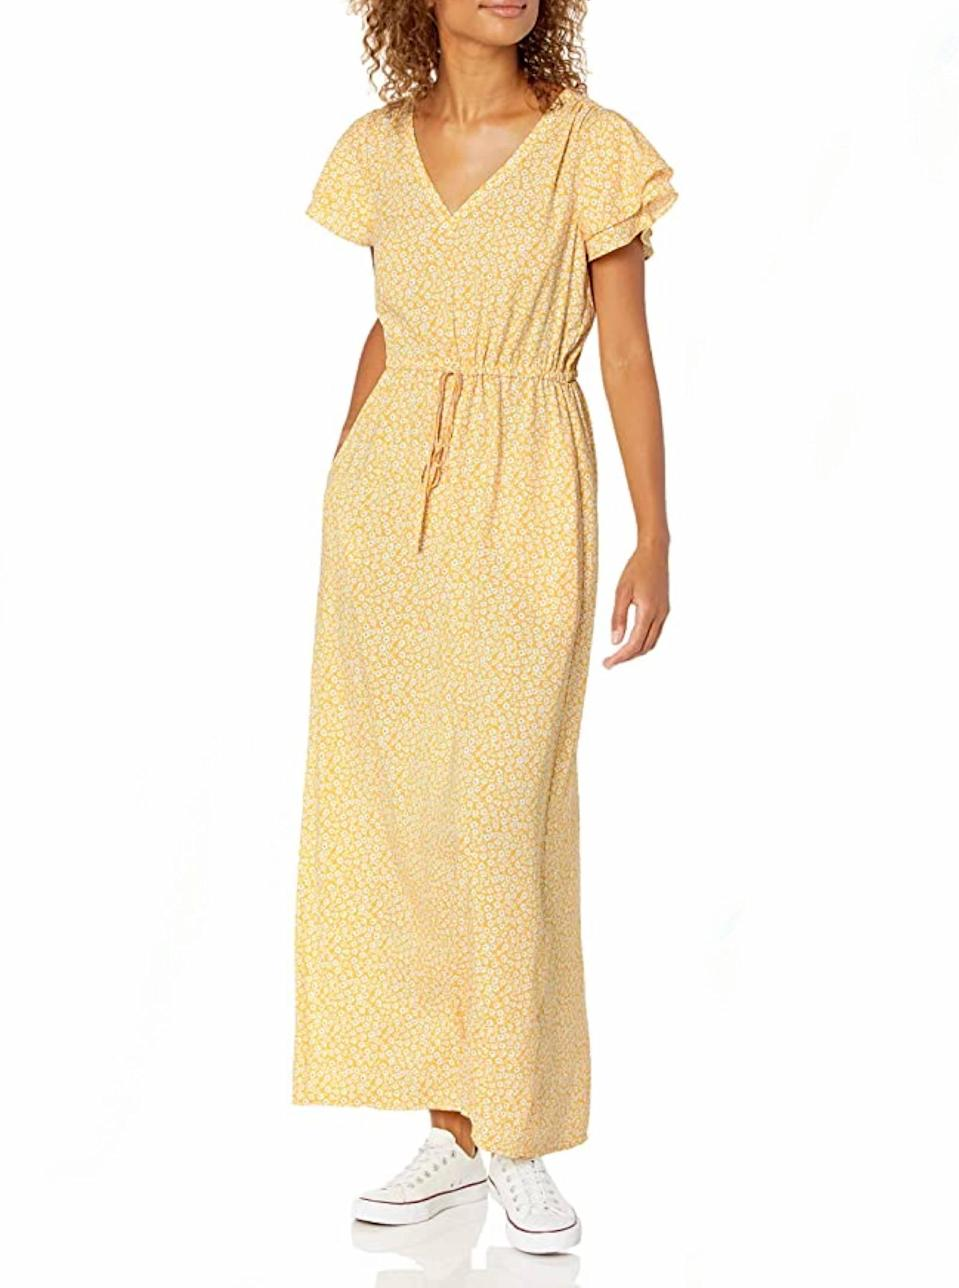 """Not here for a pop of yellow? Grab the neutral floral option and pair with chunky flats to channel <em>Reality Bites</em>. $30, Amazon. <a href=""""https://www.amazon.com/Amazon-Brand-Goodthreads-Georgette-Ruffle-Sleeve/dp/B07Y5LQBVP/"""" rel=""""nofollow noopener"""" target=""""_blank"""" data-ylk=""""slk:Get it now!"""" class=""""link rapid-noclick-resp"""">Get it now!</a>"""